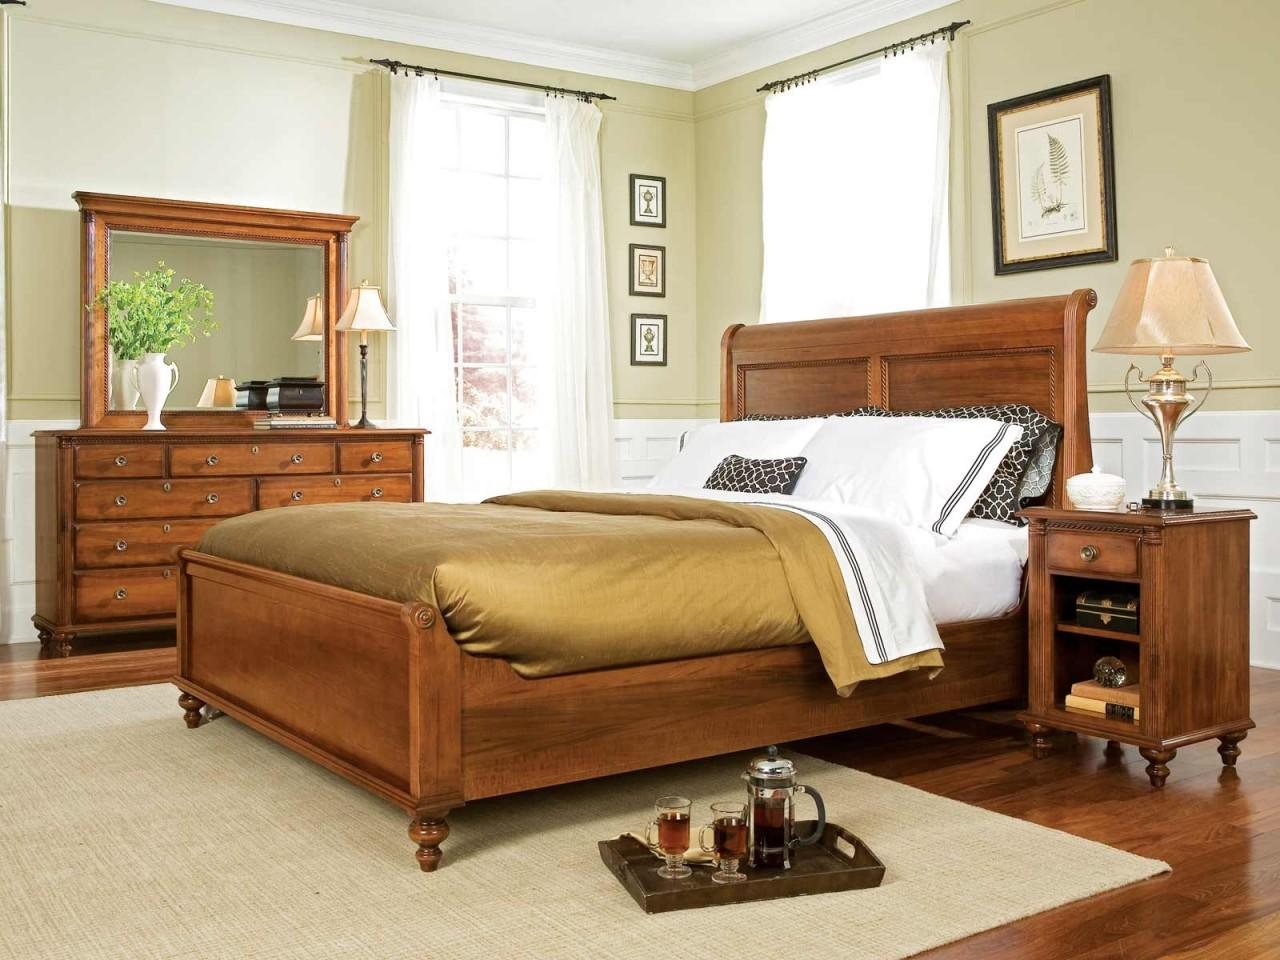 32 classy bedroom furniture sets ideas and designs for Lane bedroom furniture